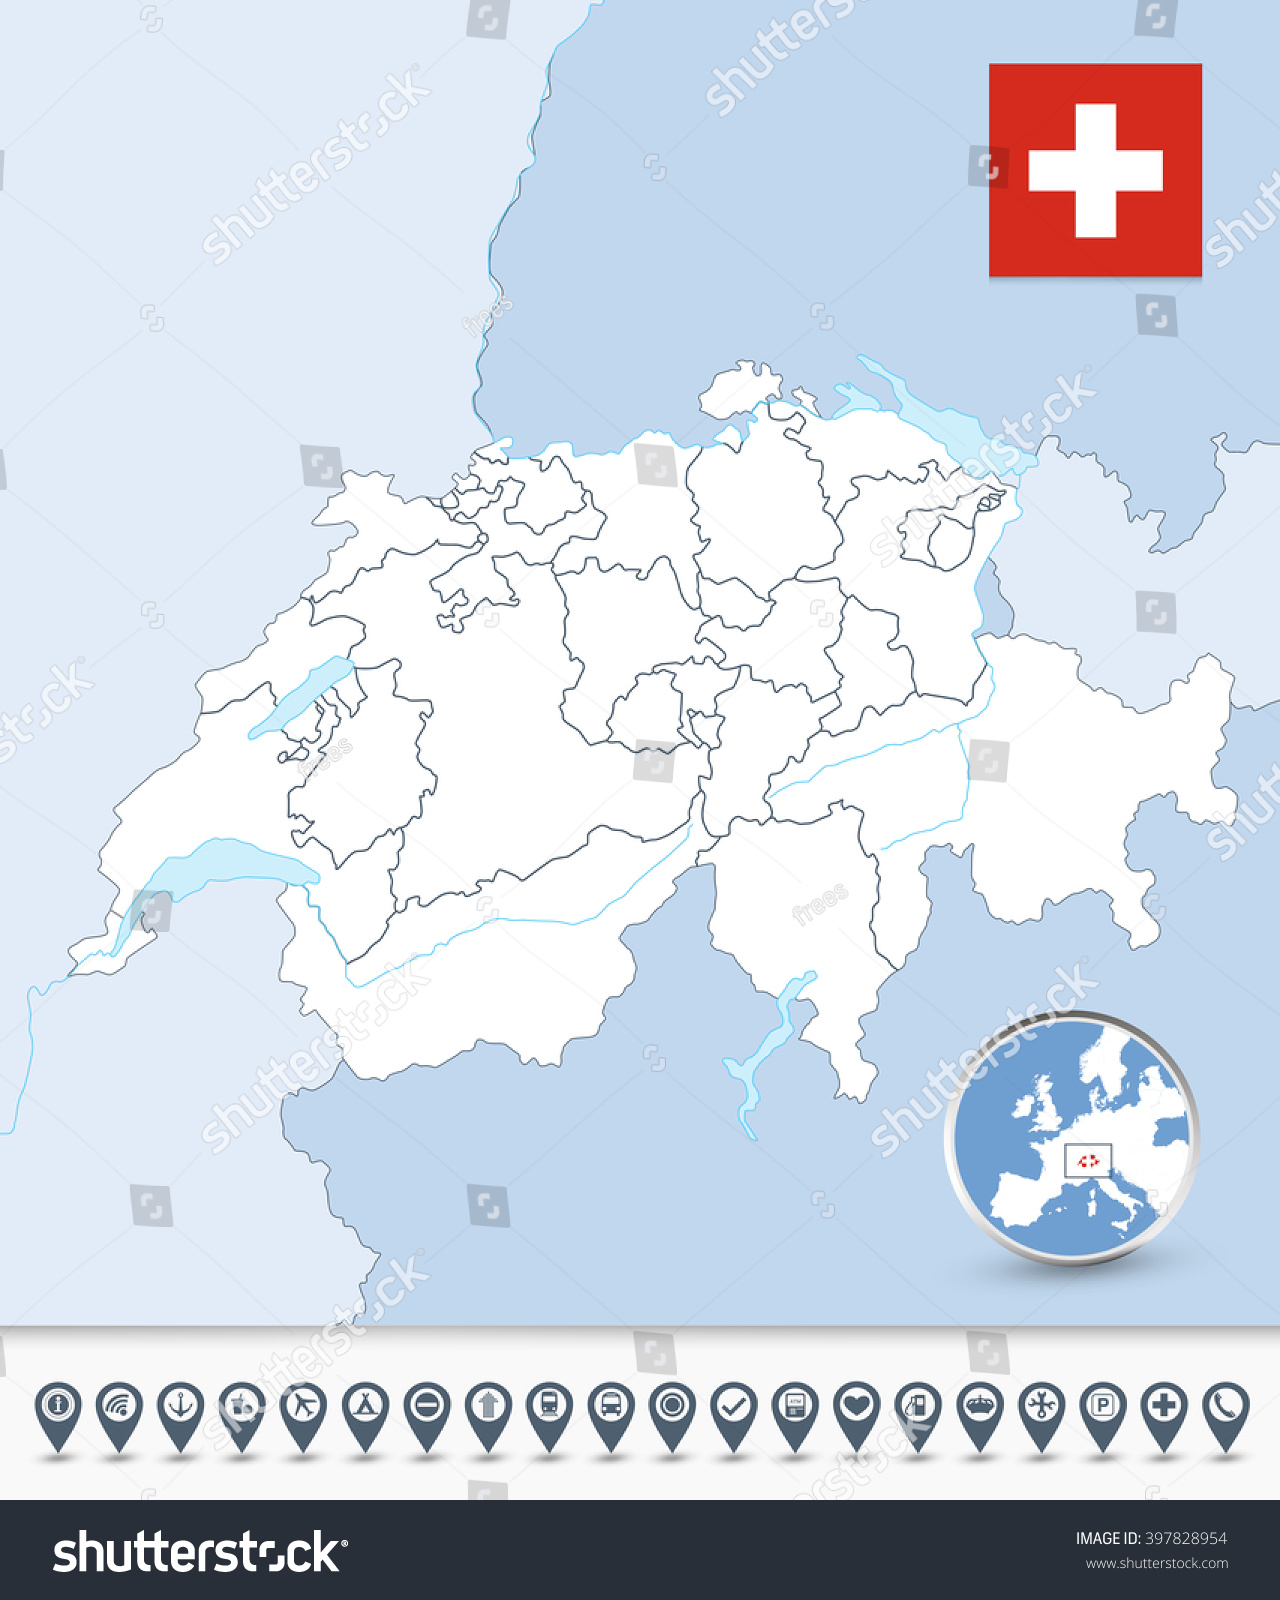 switzerland outline map with map markers all elements are separated in editable layers clearly labeled